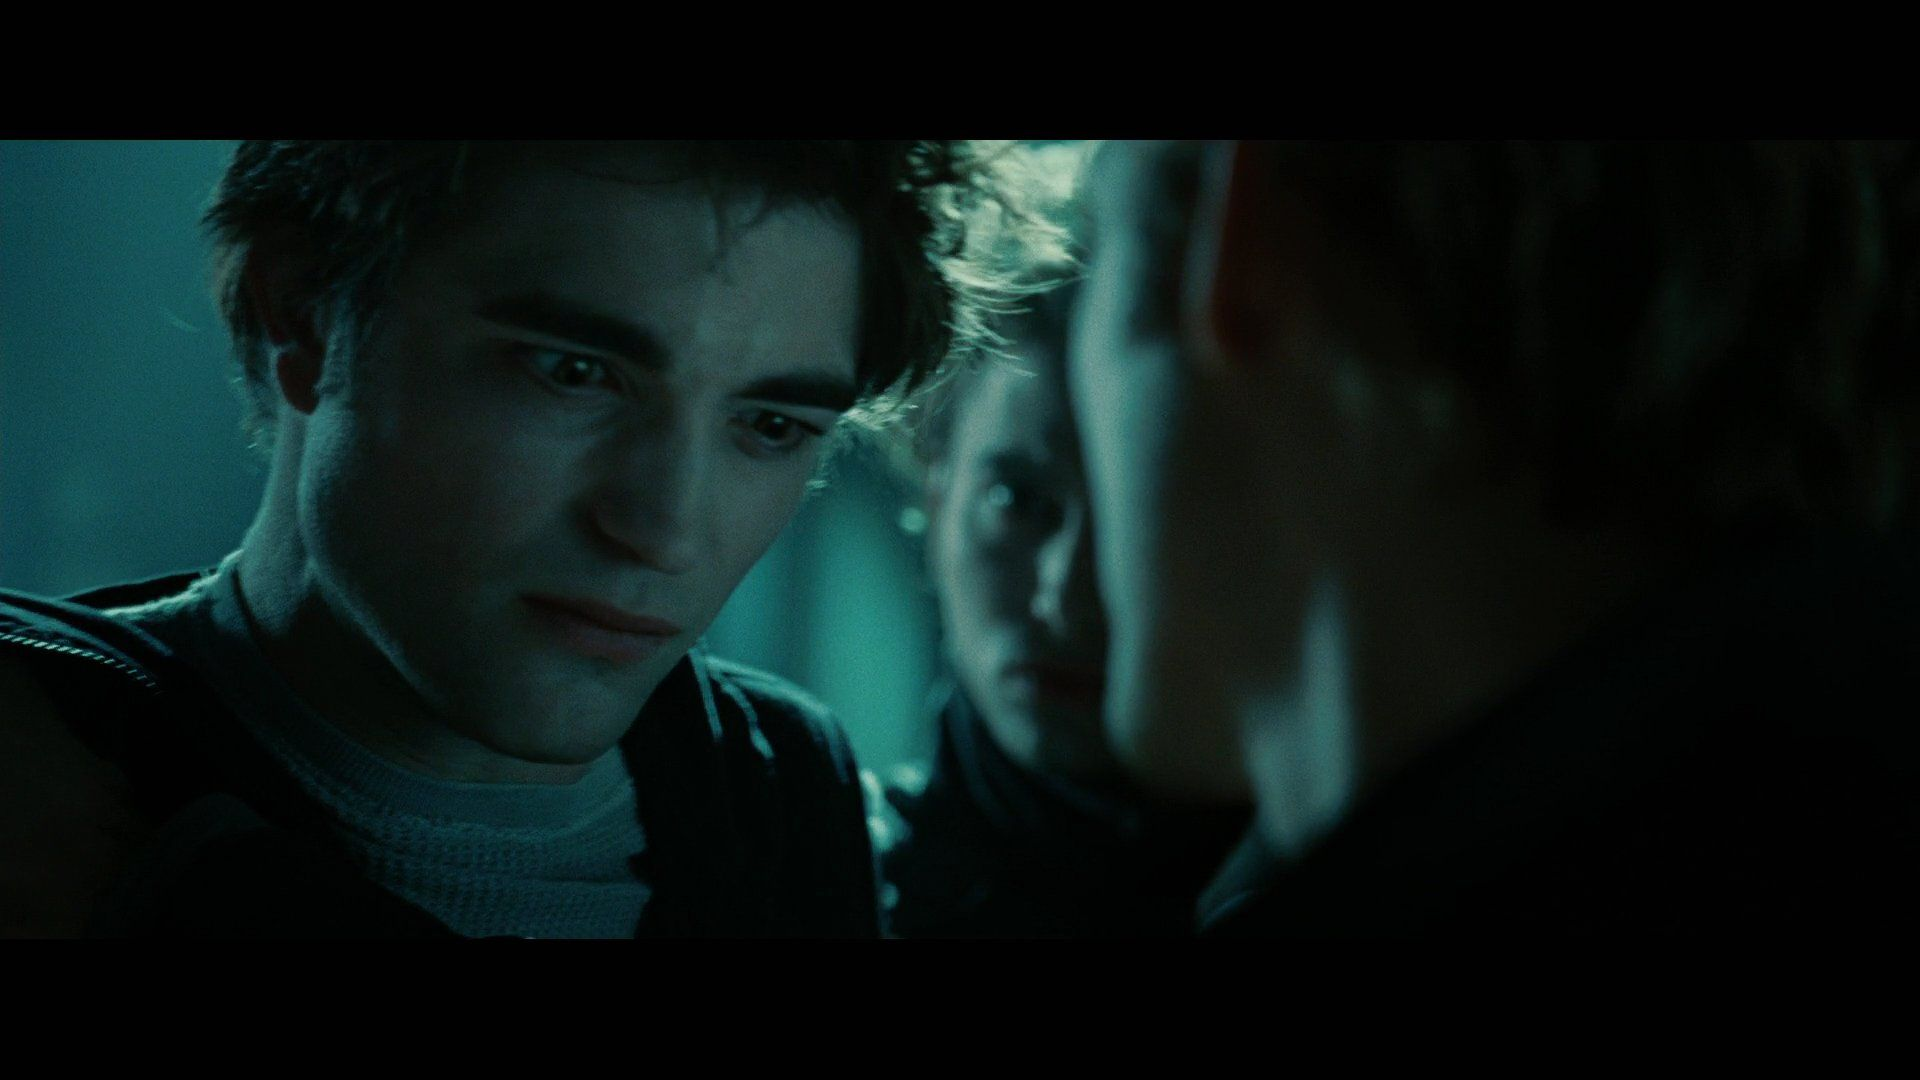 Pin by Amanda on Twilight Screencaps Twilight pictures